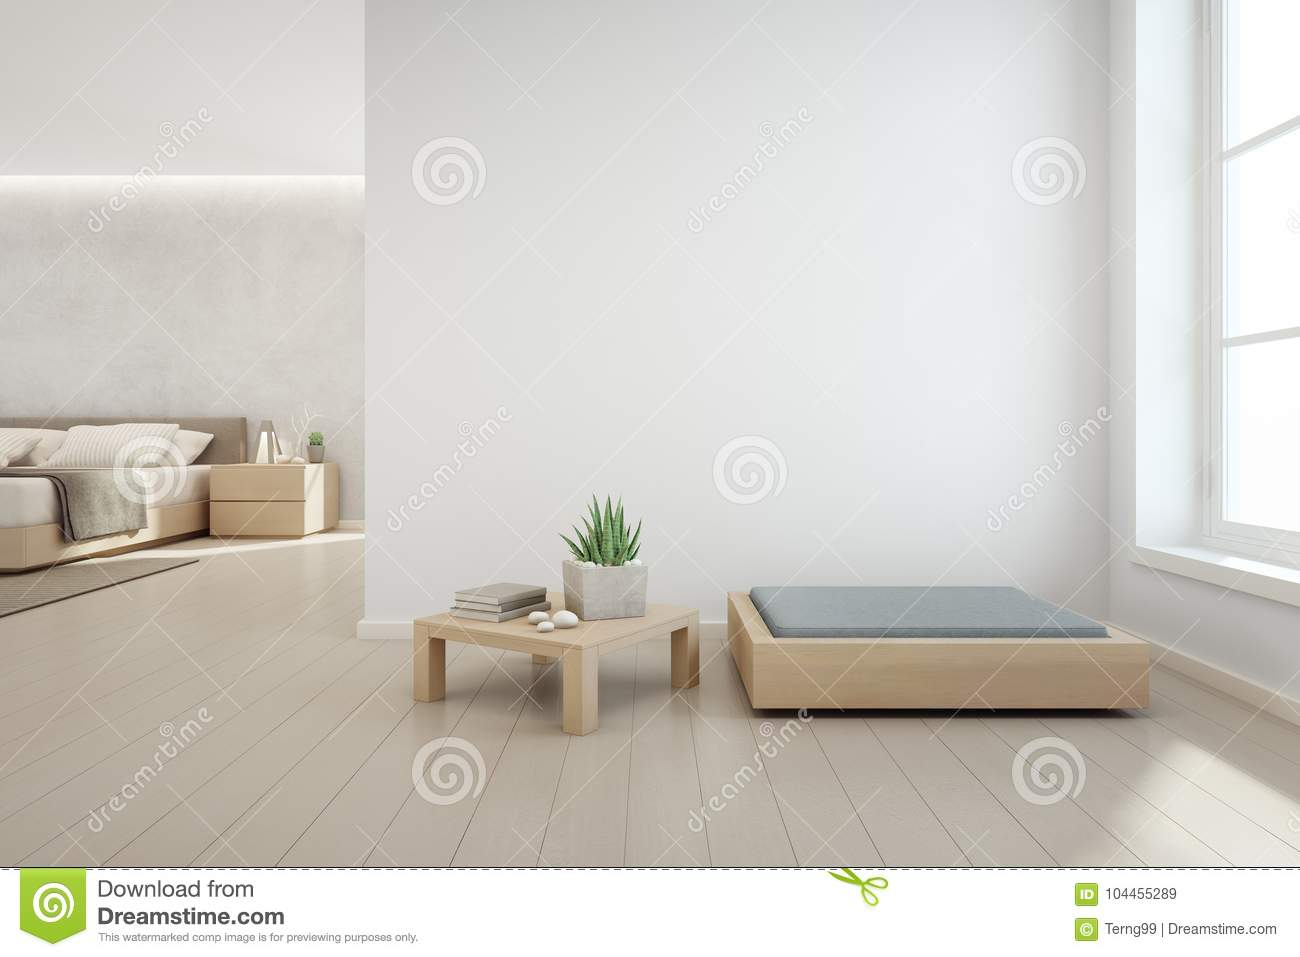 Bedroom White Background Indoor Plant On Wooden Coffee Table And Modern Furniture